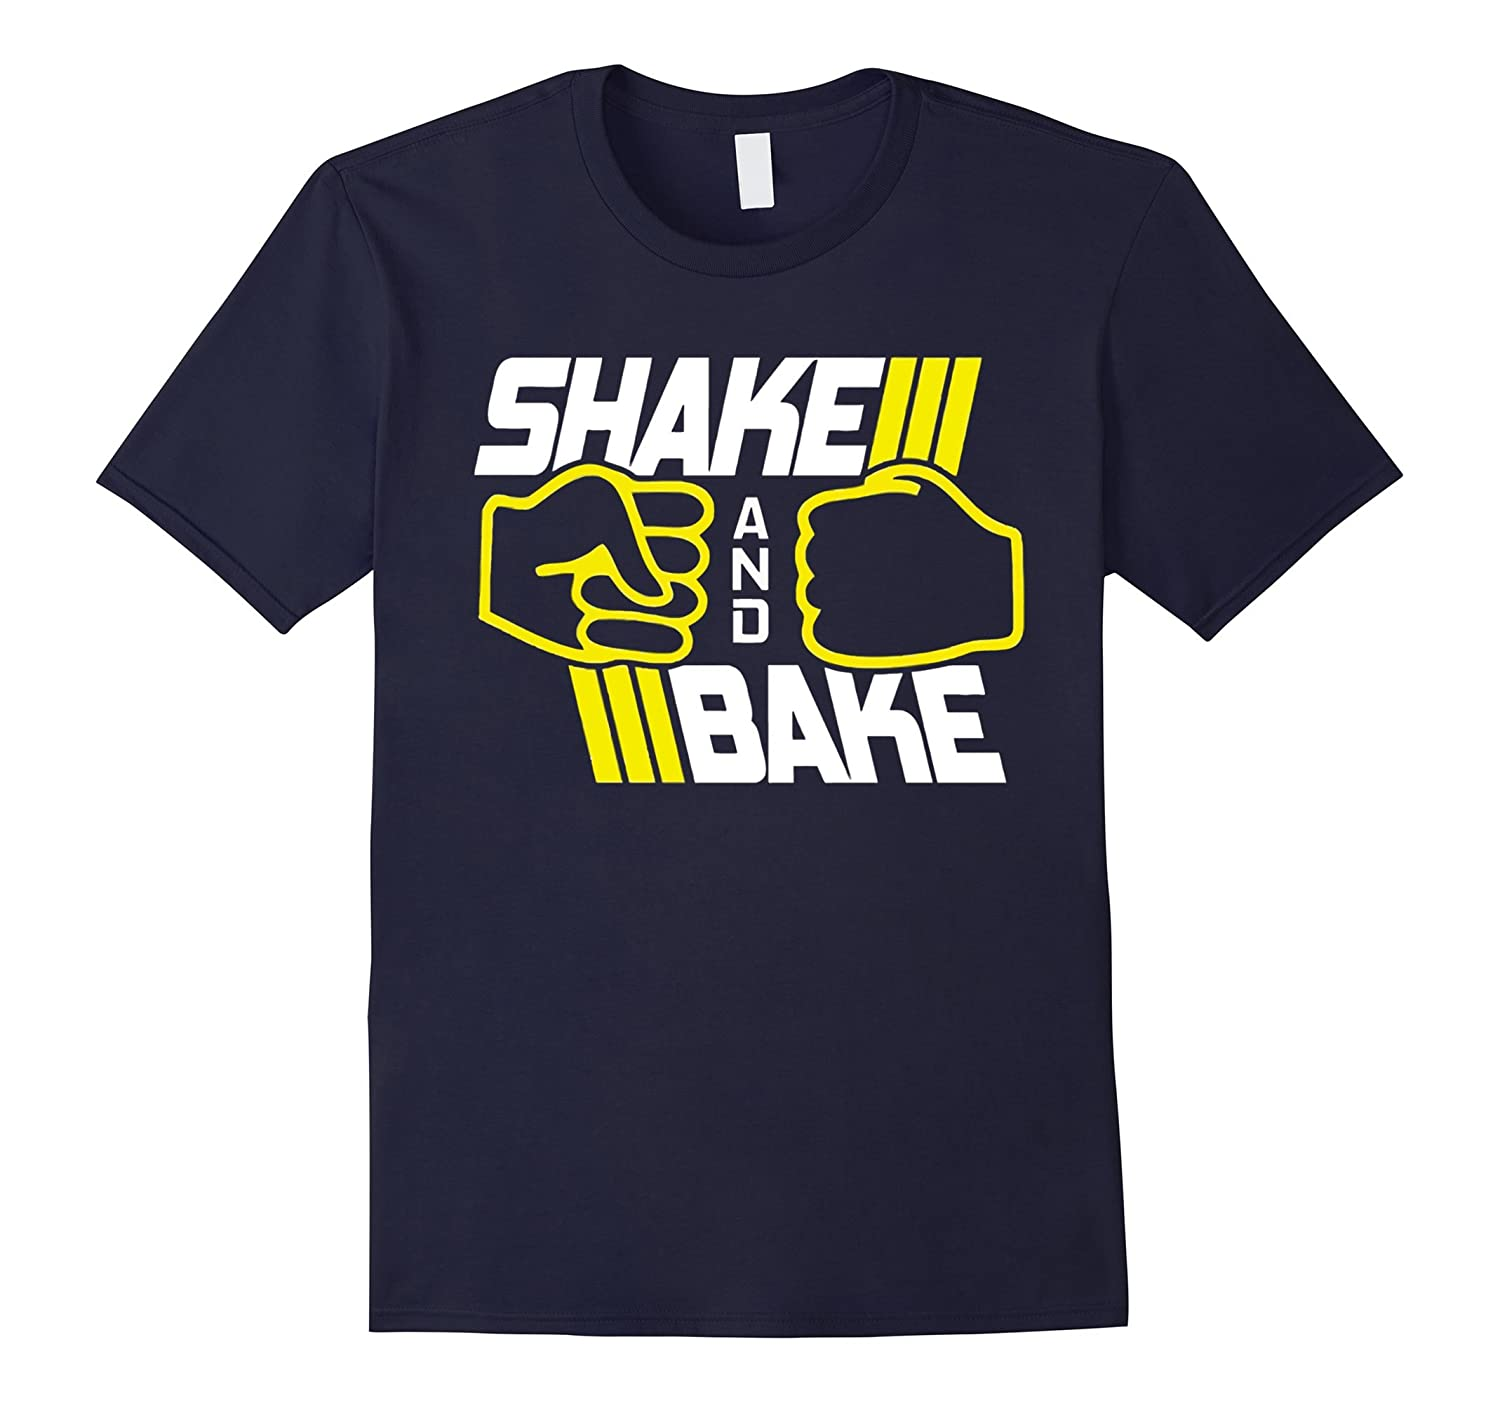 Shake and Bake Ricky Bobby Funny Racing T-shirt-TD